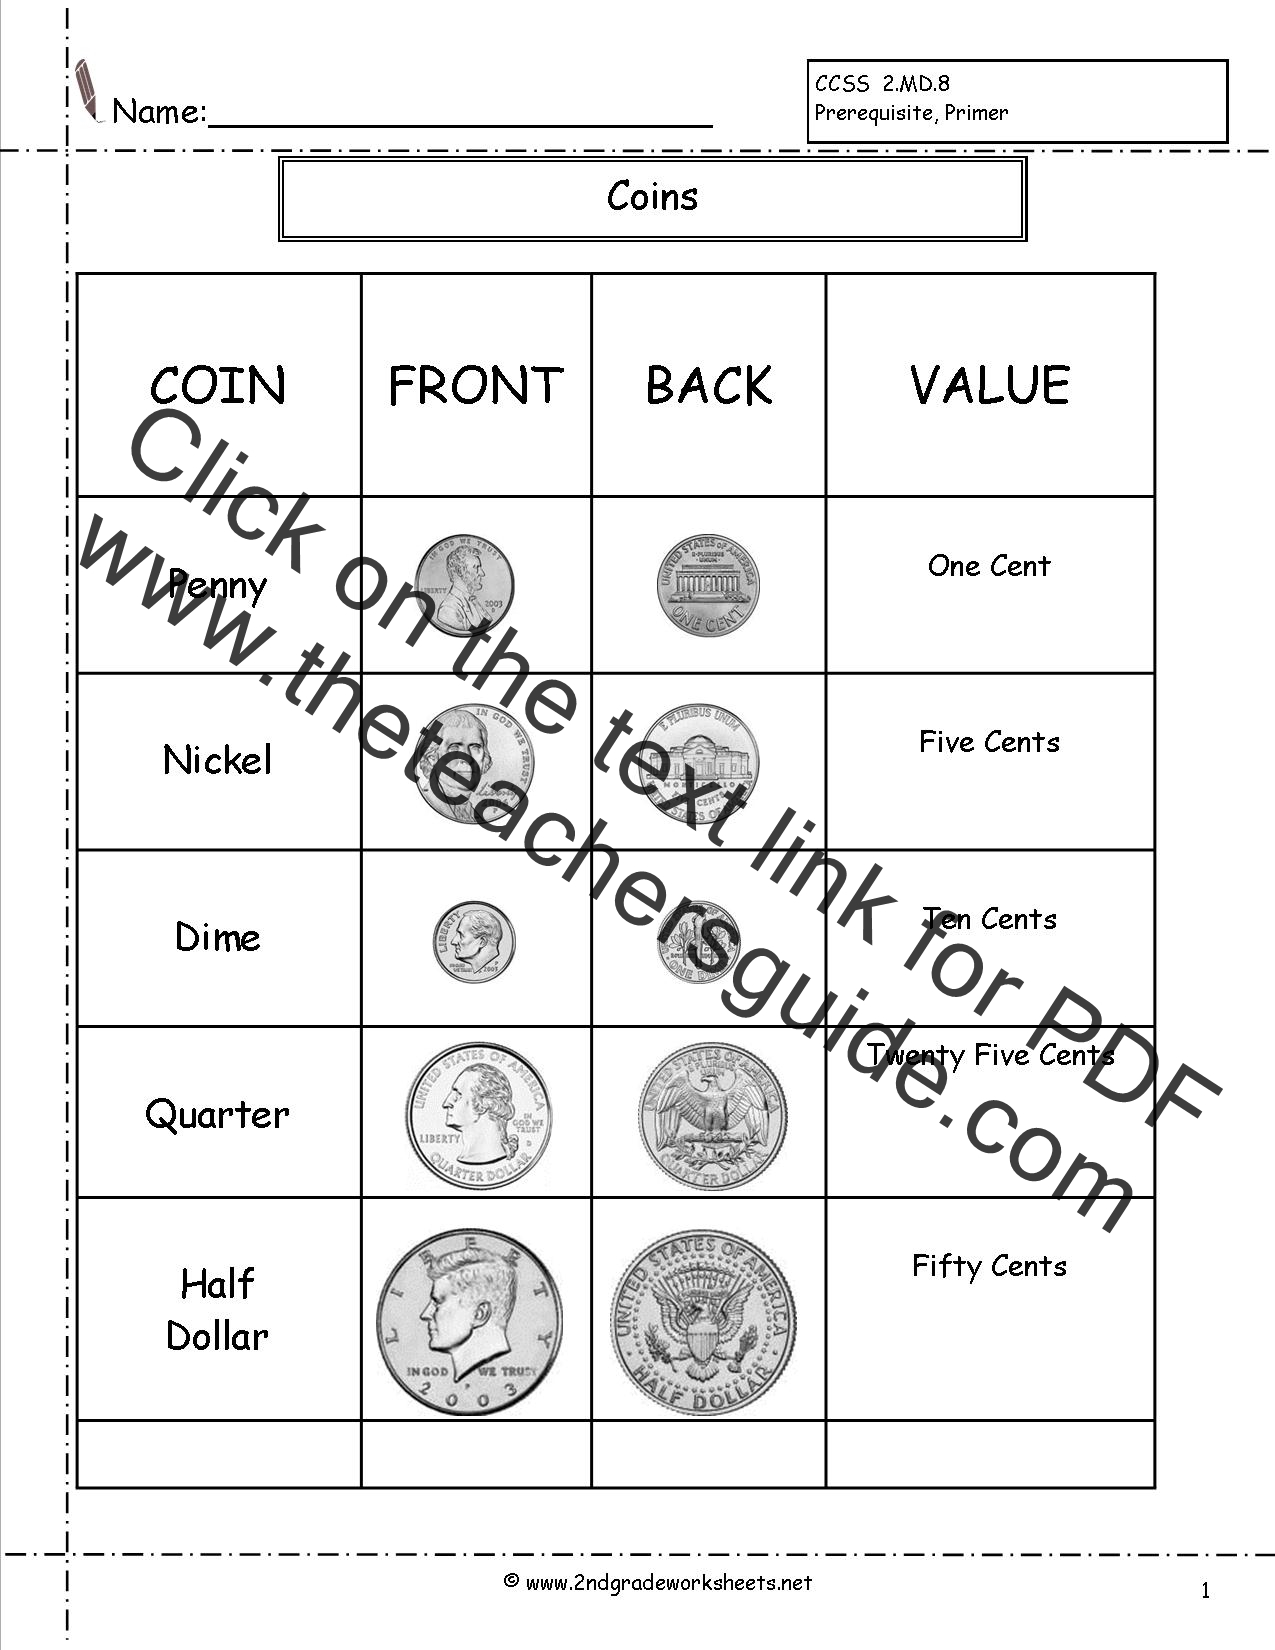 Eloquent Printable Coin Collecting Sheets